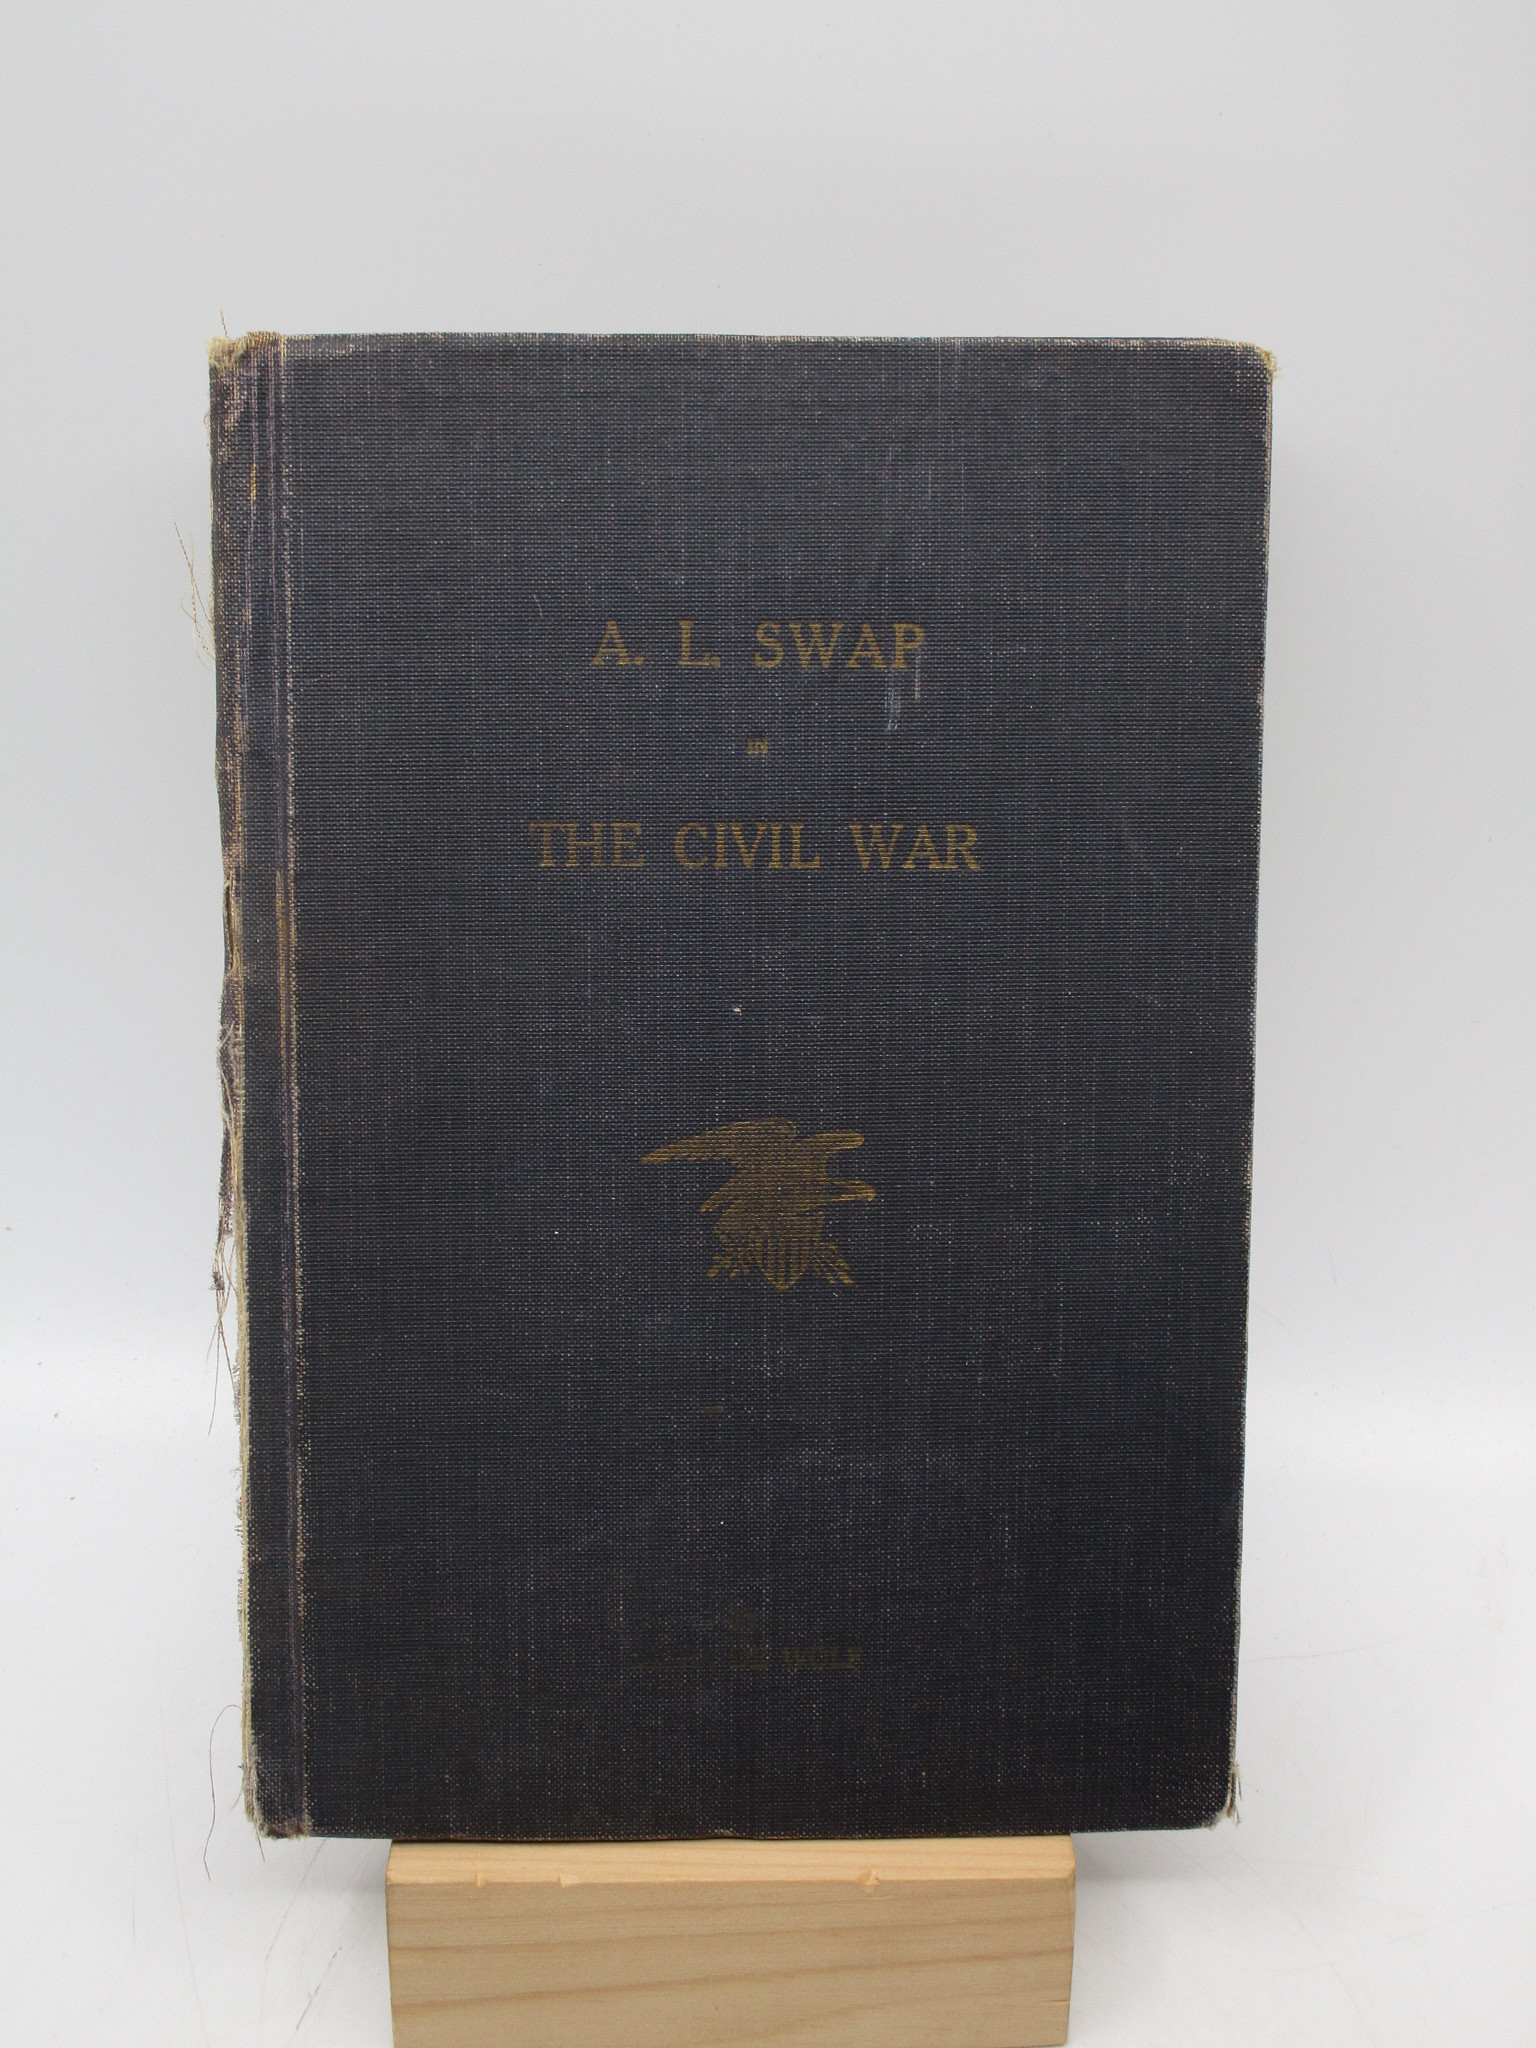 Image for A. L. Swap in Civil War (First Edition)  (37th Illinois Infantry)